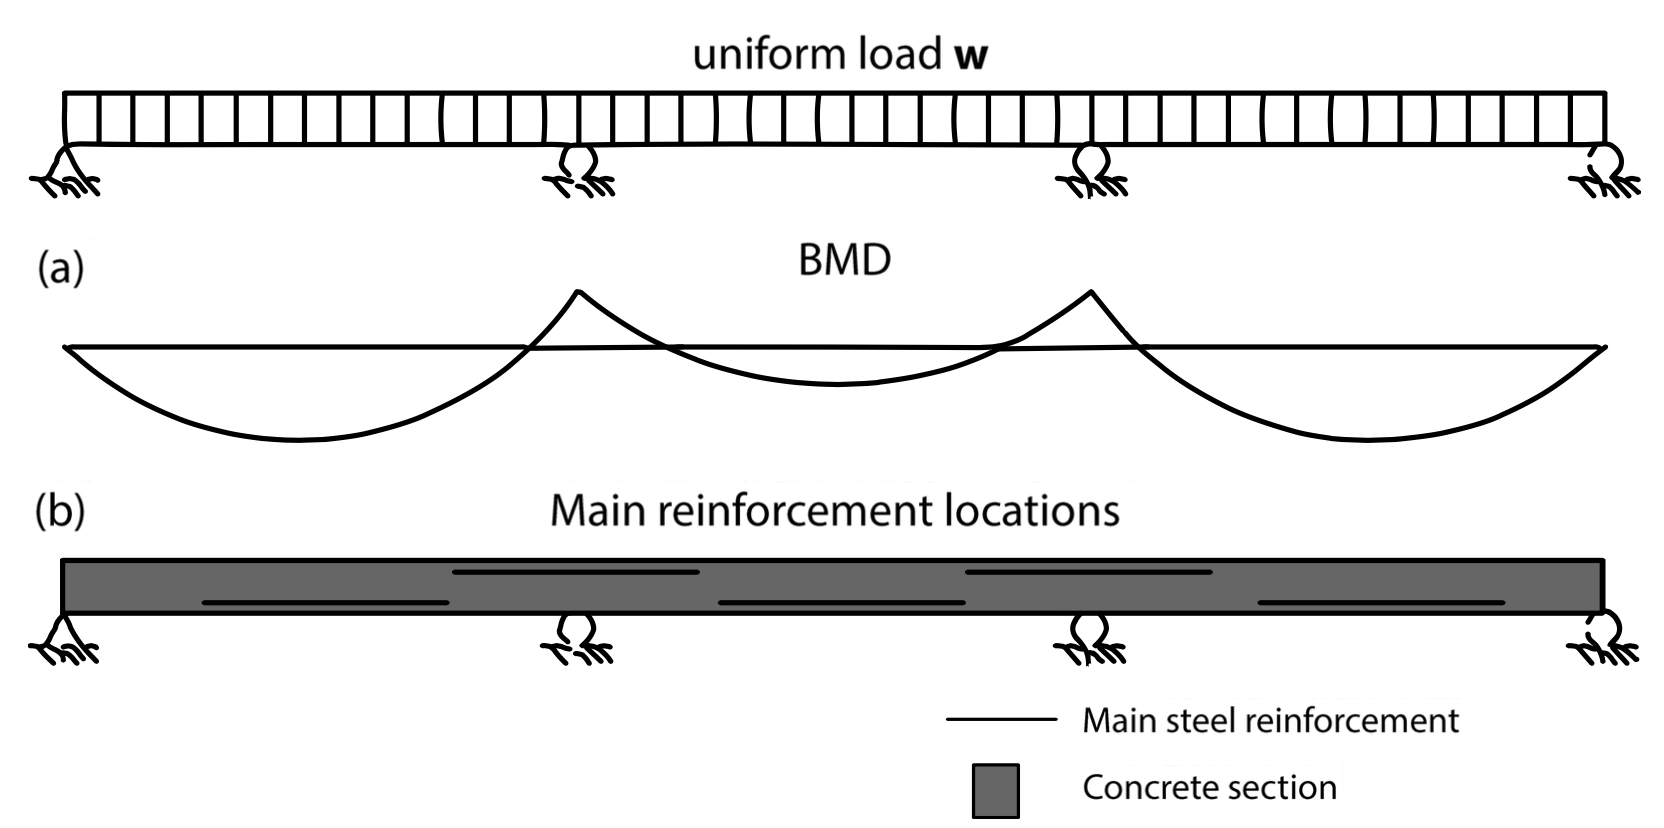 where-reinforced-concrete-should-be-placed